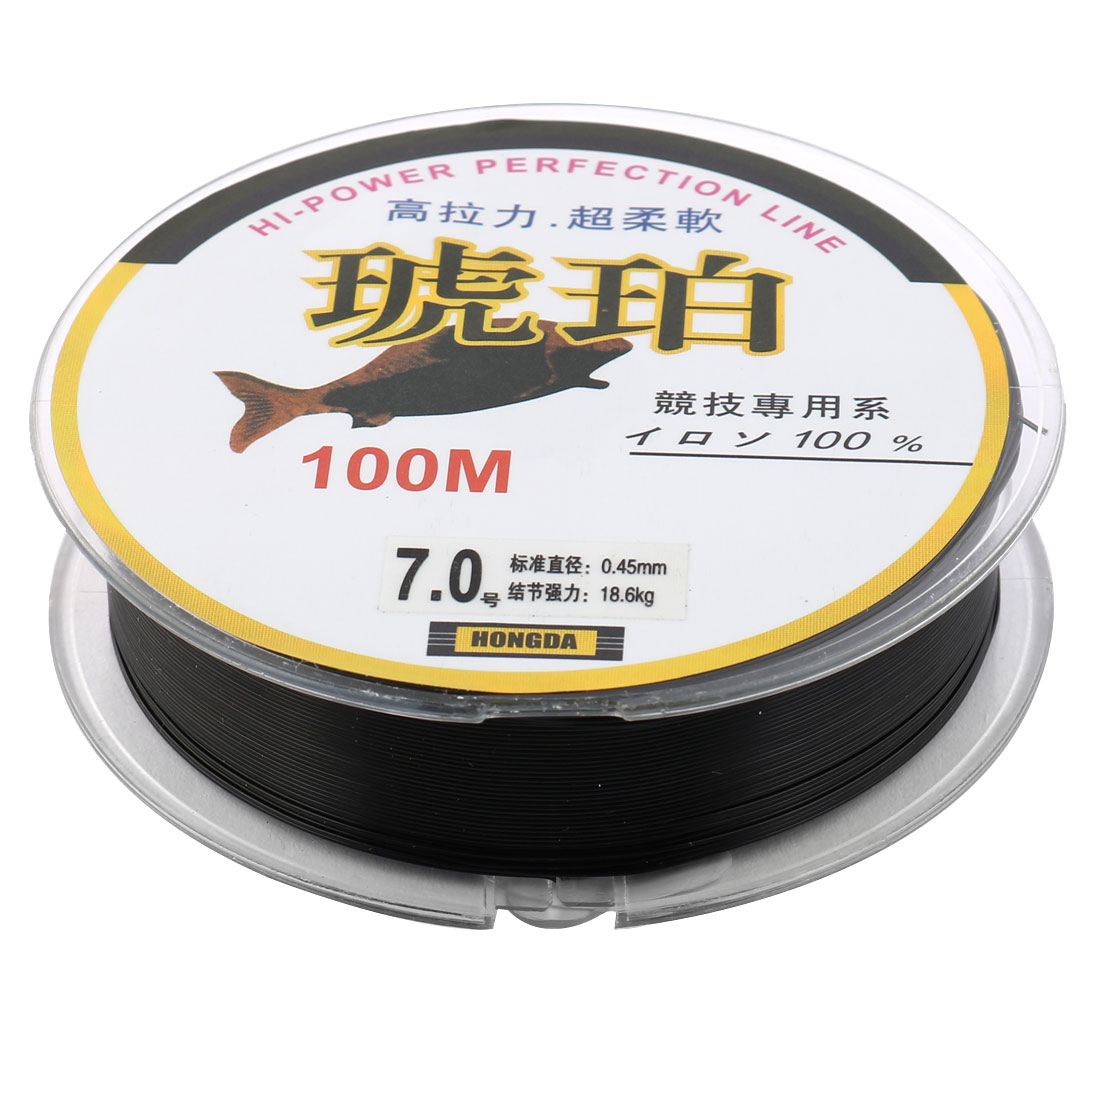 Cyan Fishing Spool Line 100m Diameter 0.45mm